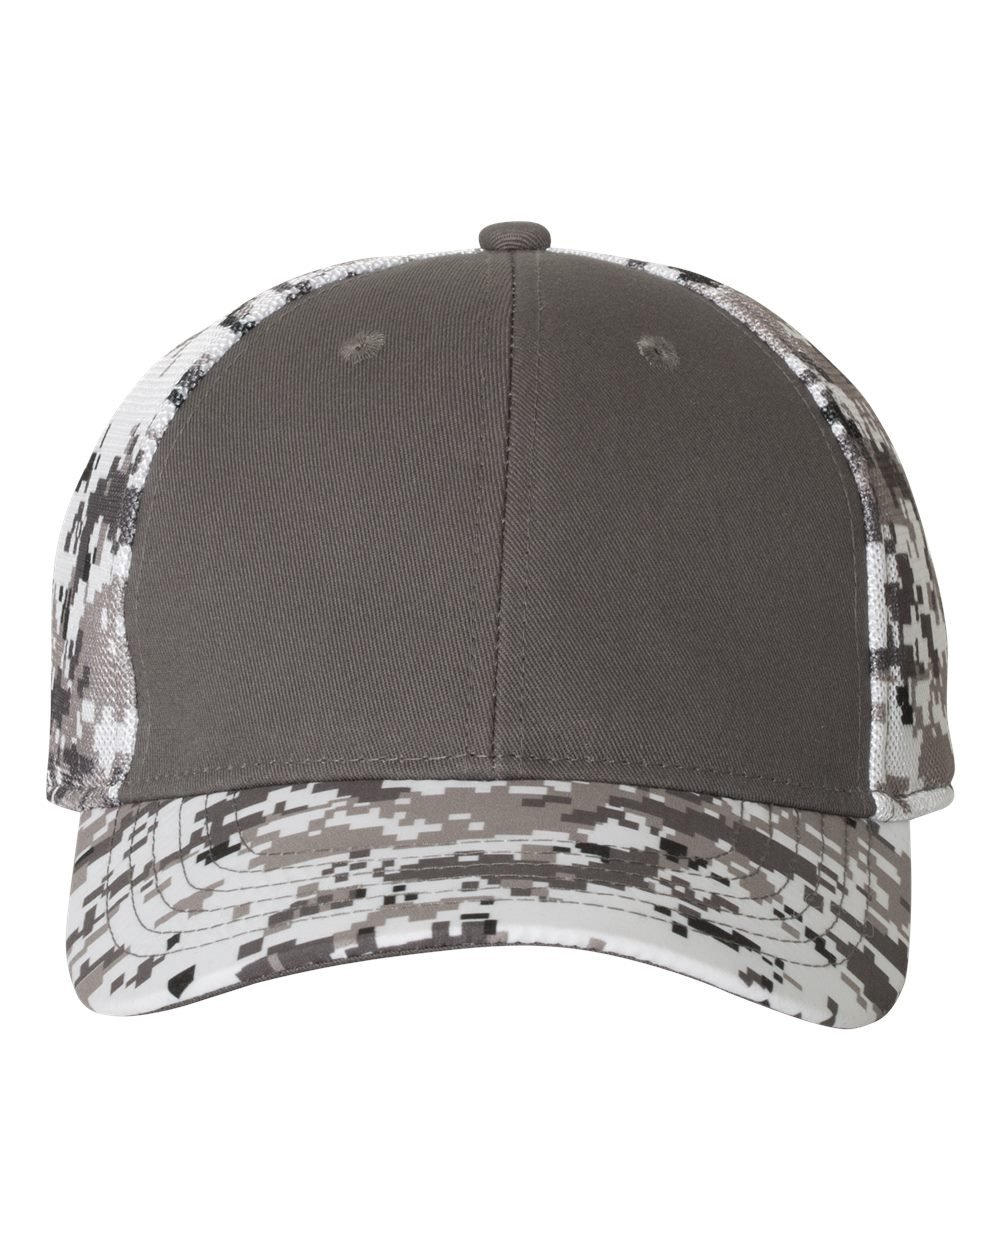 Outdoor Cap APPAREL ユニセックスアダルト B0711J3W5Z A|Charcoal/ White Charcoal/ White A